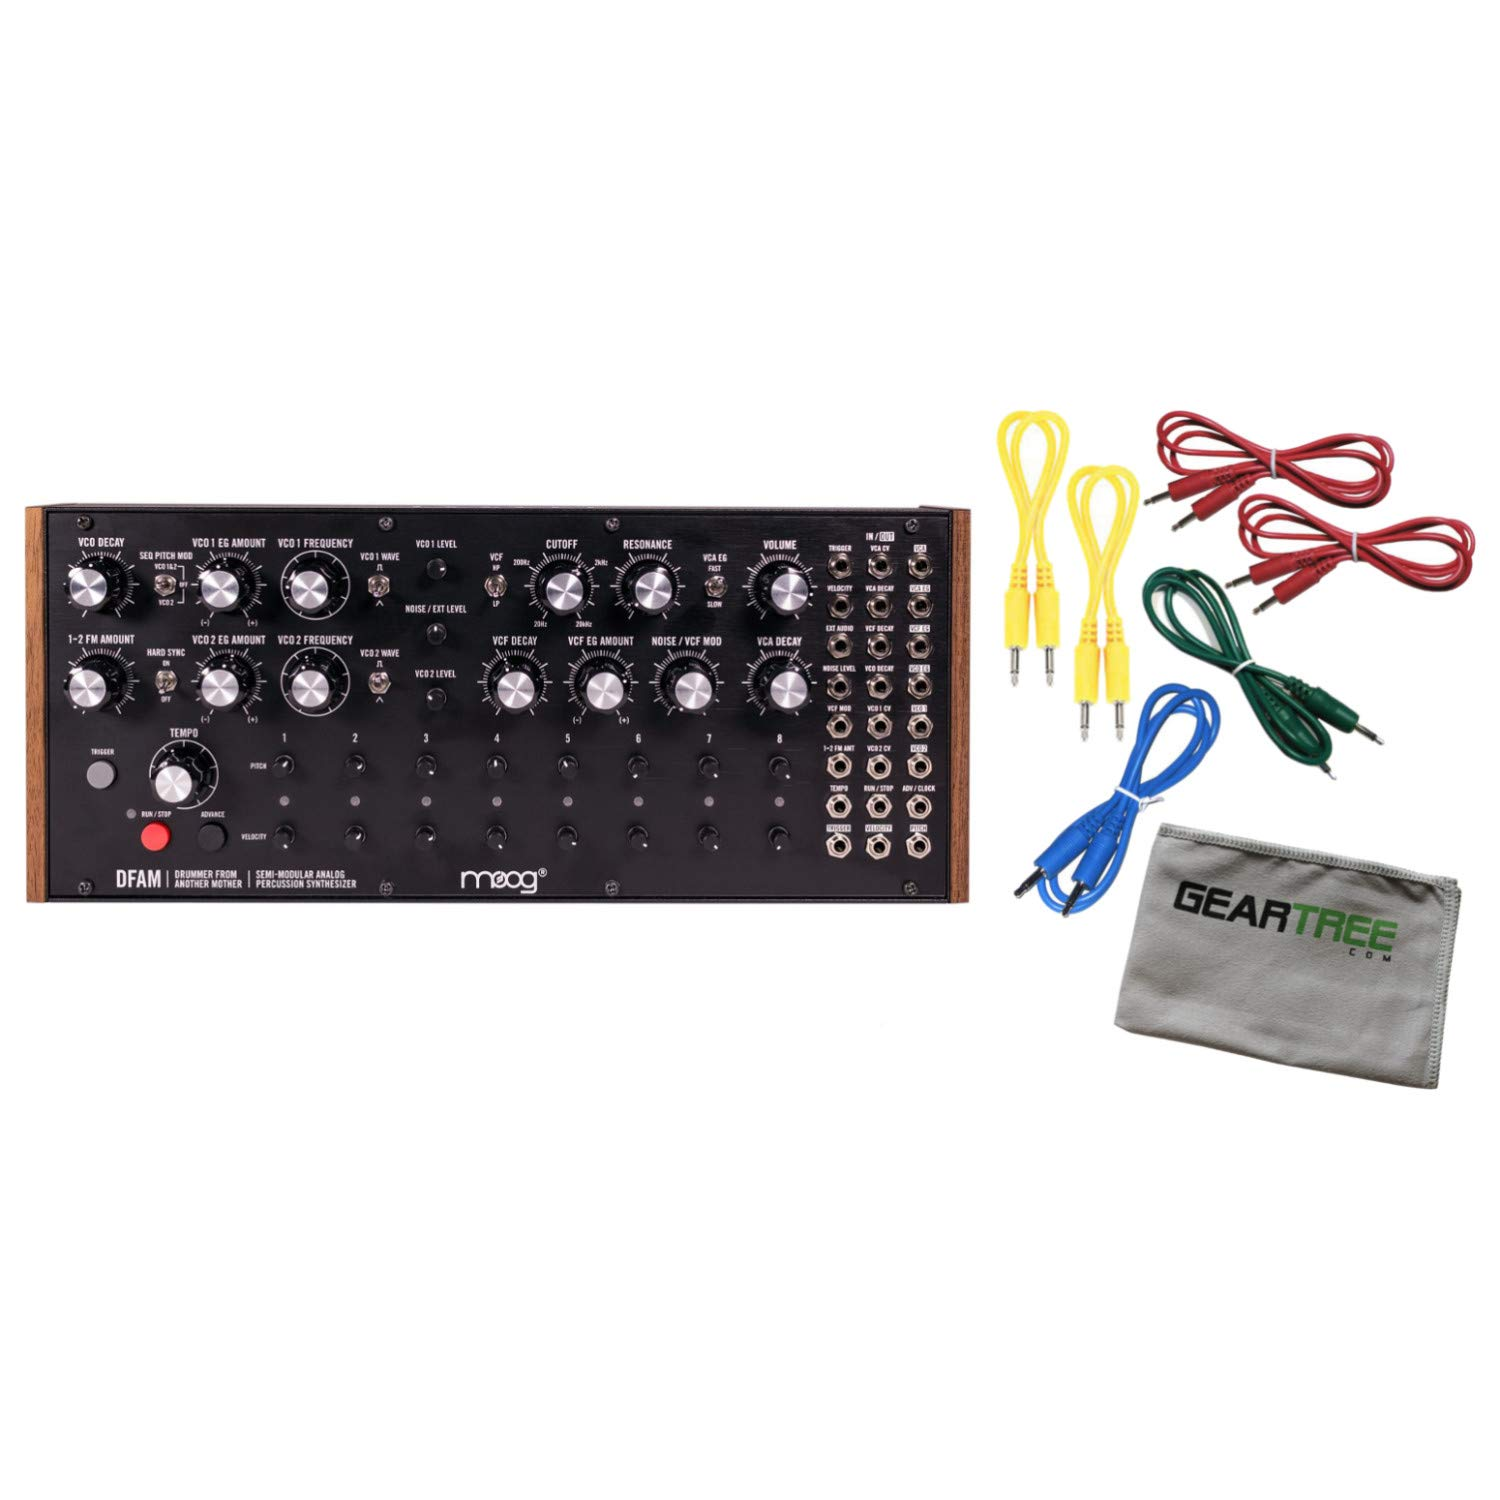 Moog DFAM Semi-Modular Analog Percussion Synthesizer w/ 6 Cables and Cloth